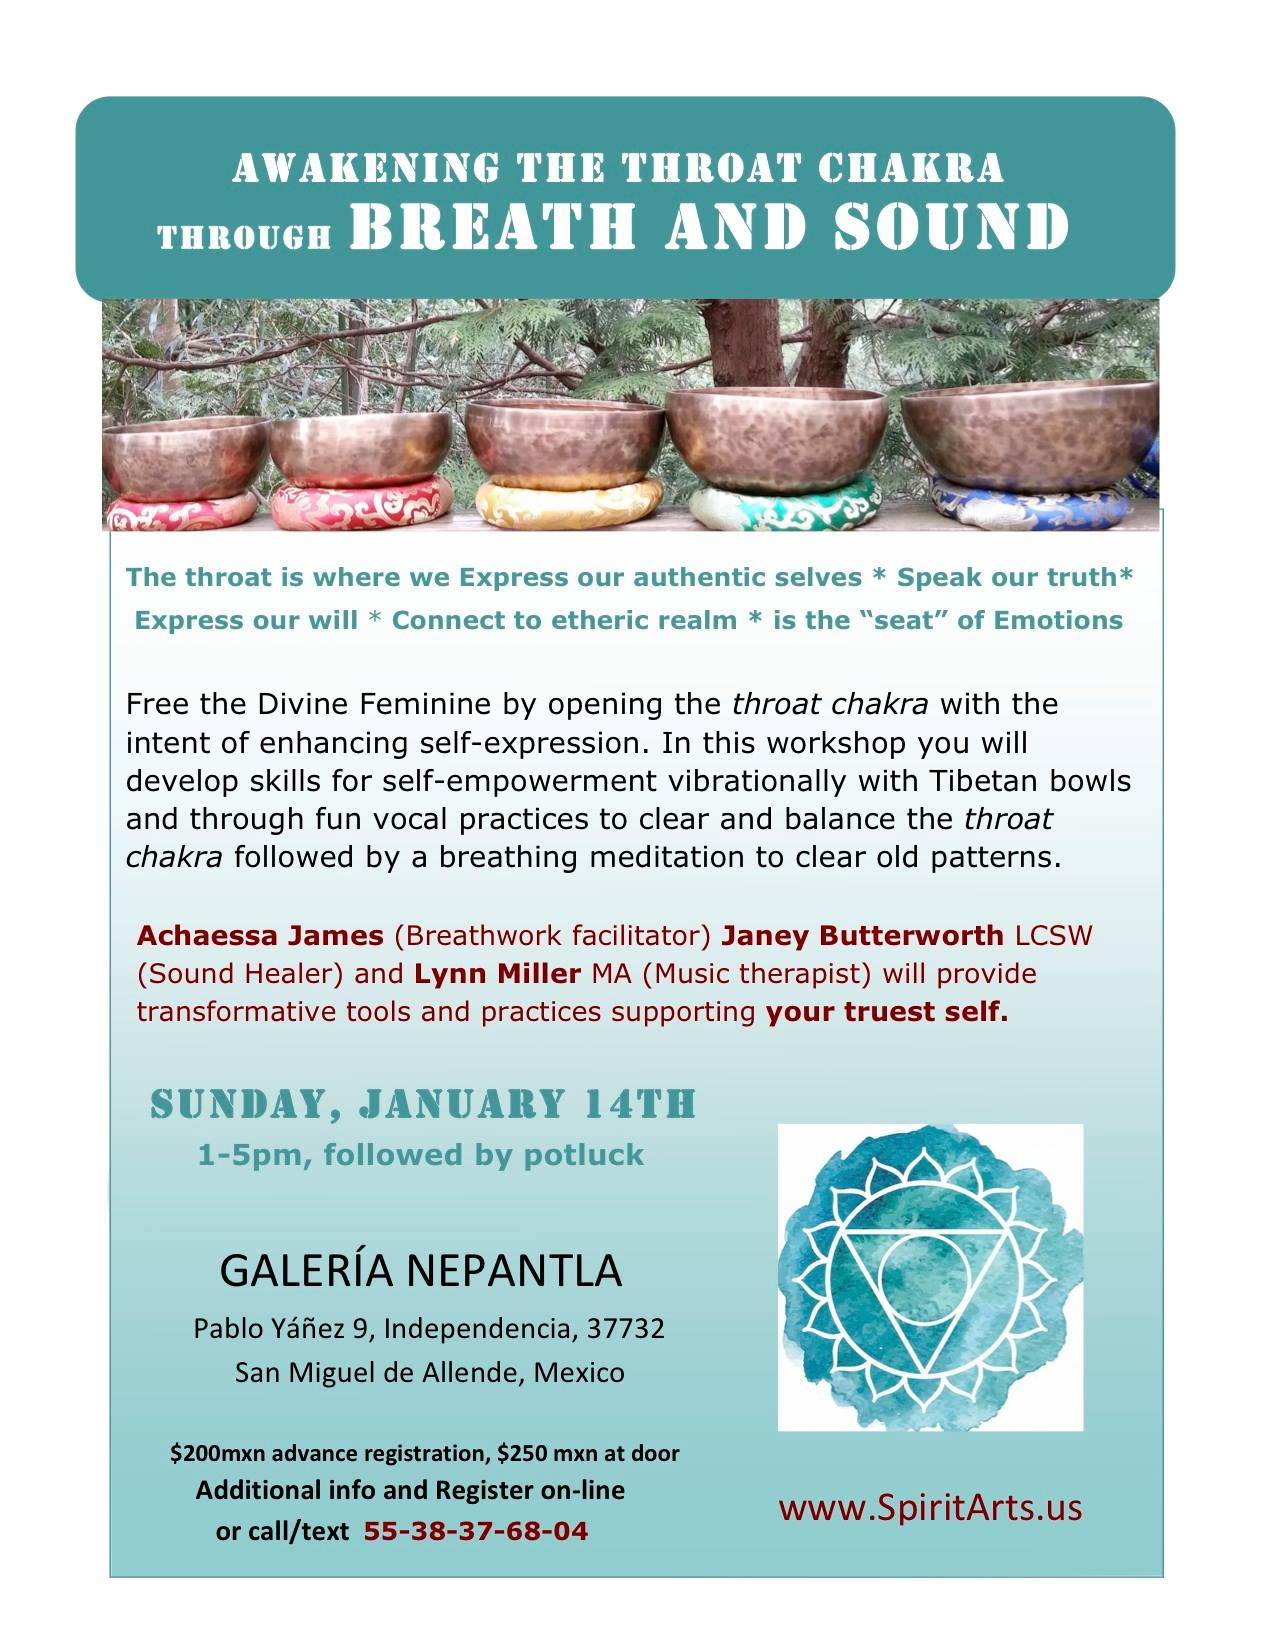 Open Throat Chakra through Breath and Sound | Discover San